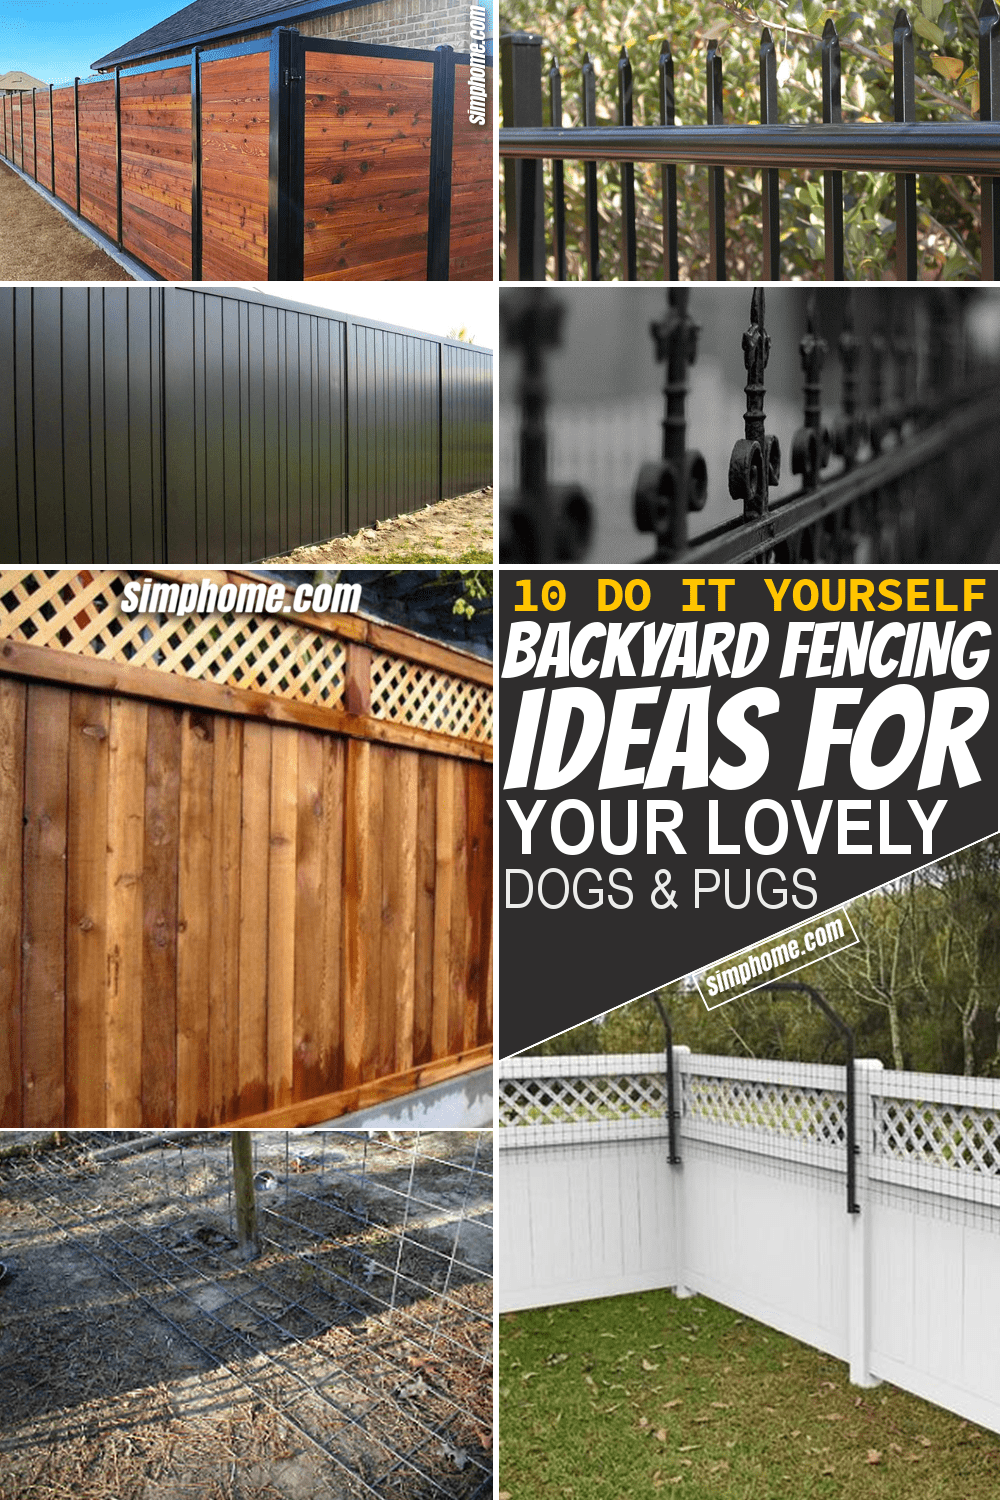 Simphome.com 10 Backyard Fencing Ideas for Dog Featured Image Pinterest